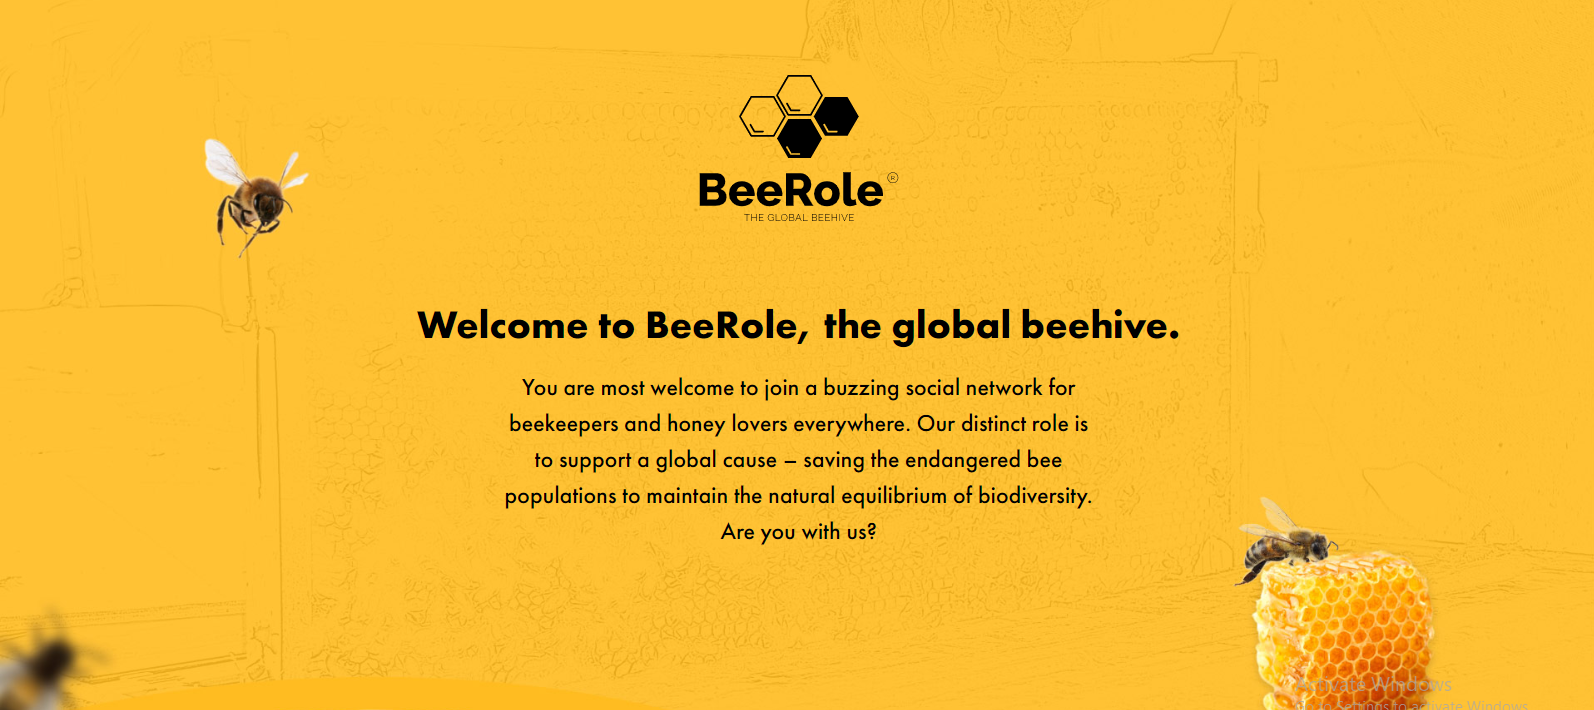 BeeRole.com – The Global Beehive